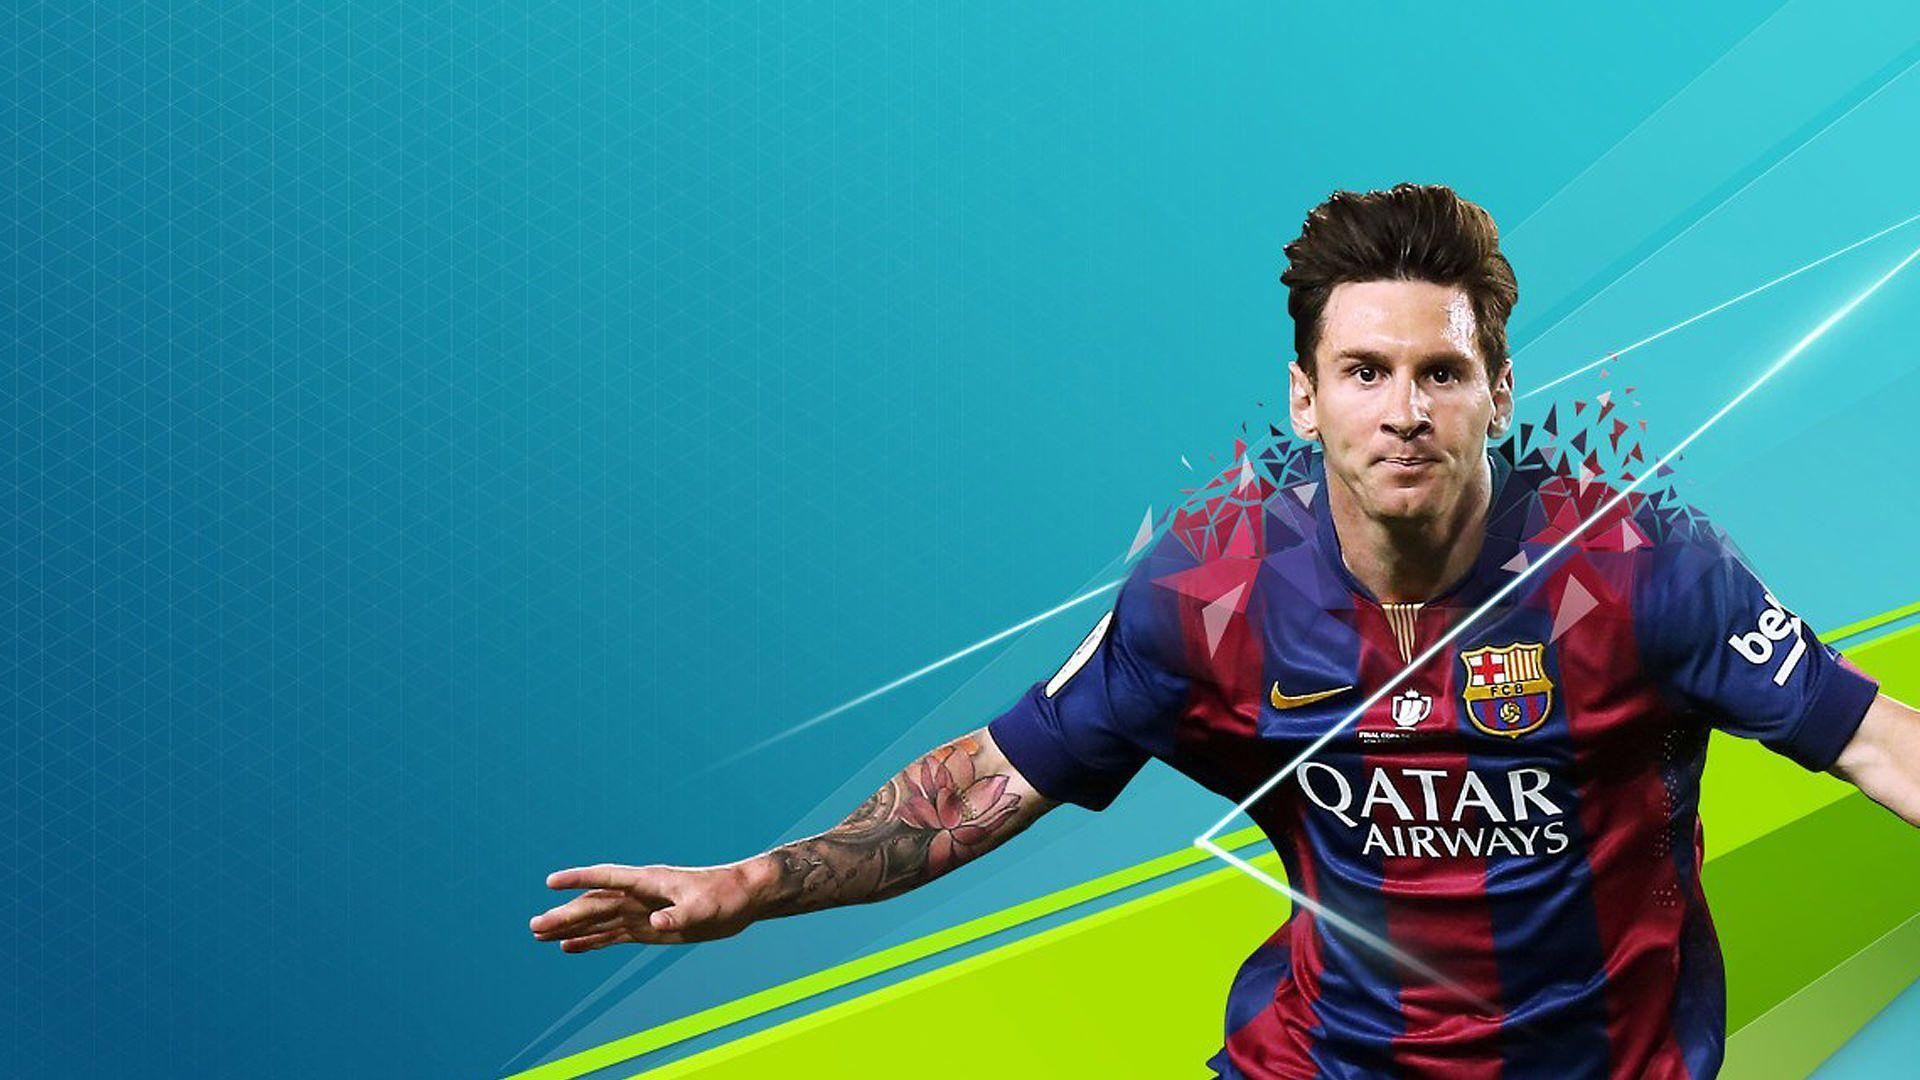 Download FIFA 18 HD Wallpapers 1920x1080 | Read games ...